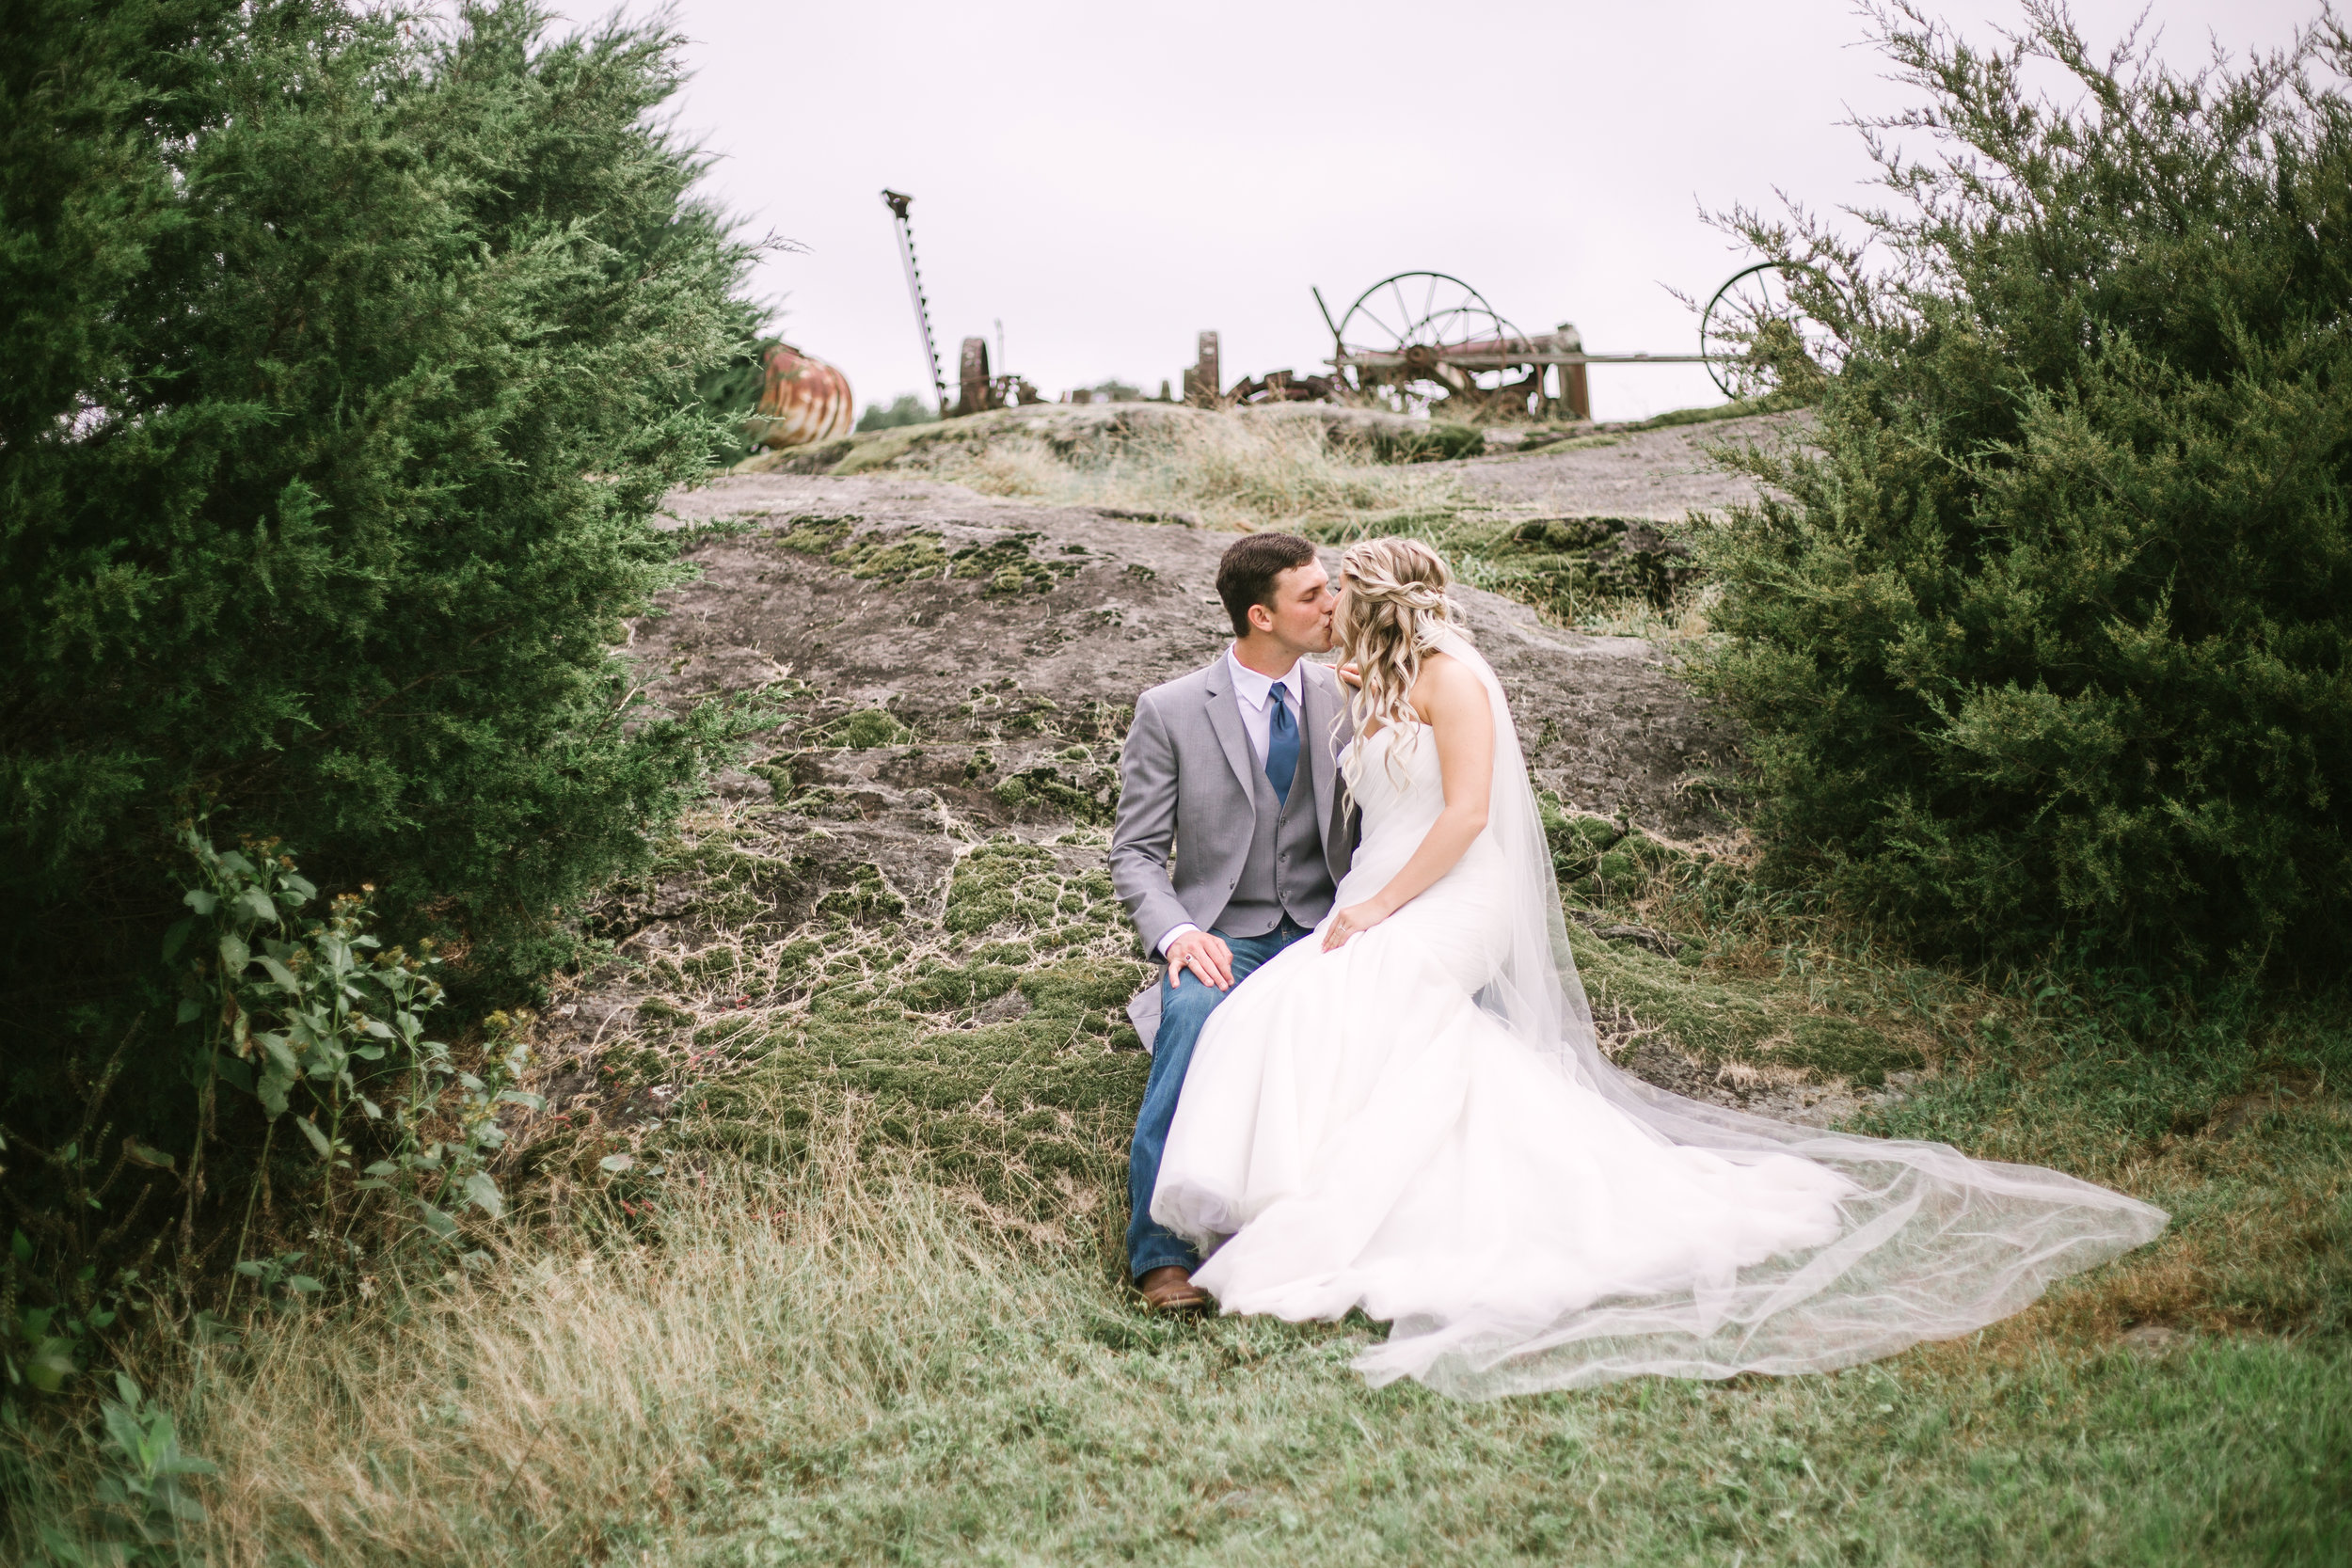 Sydney & Brennon - Old Mill Farm - Amative Creative-83.jpg